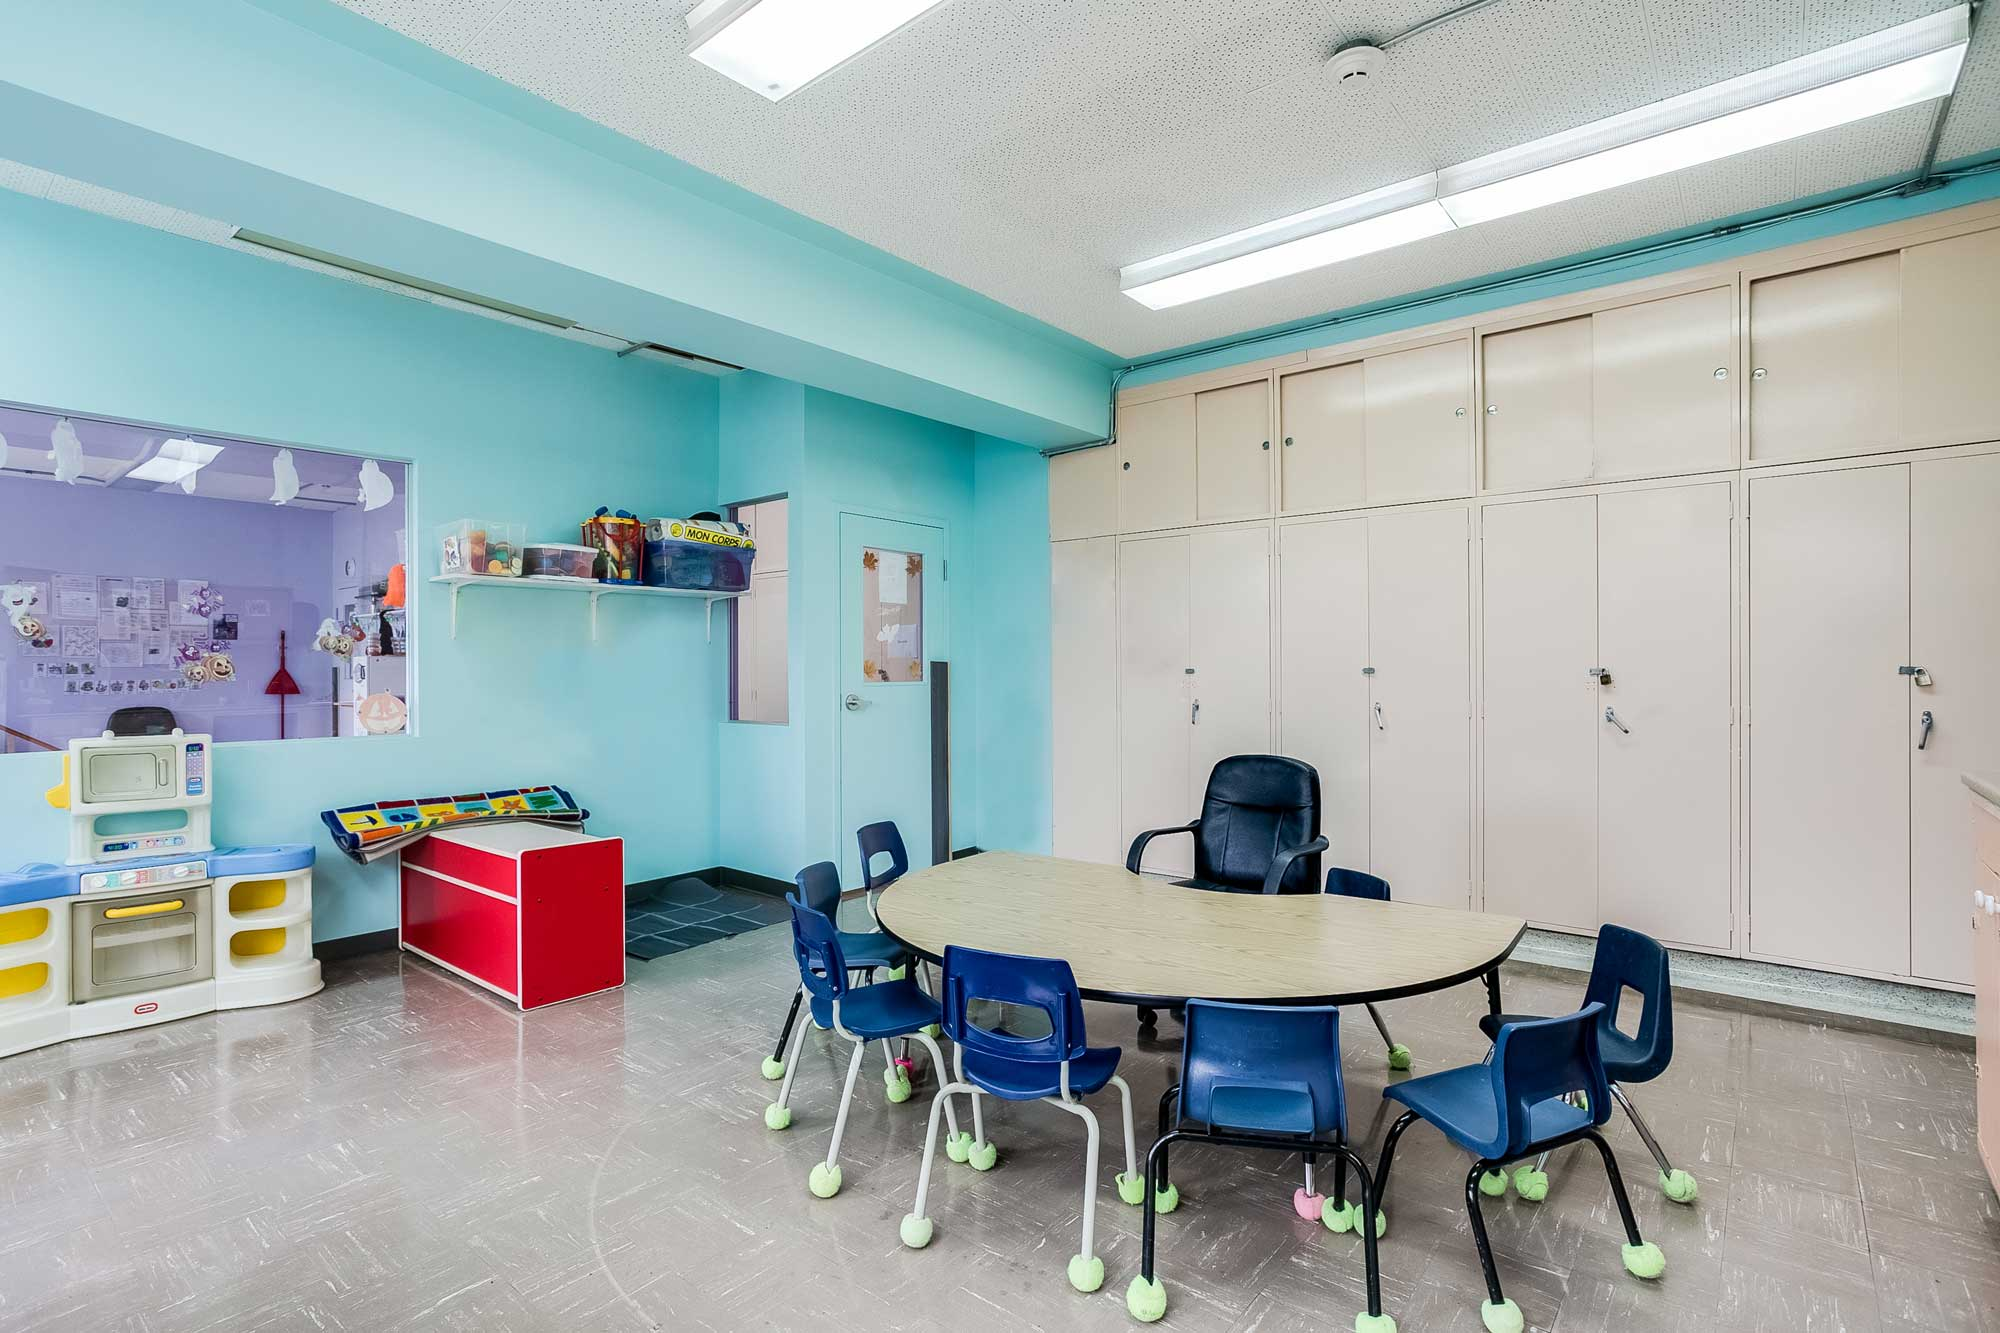 daycare interior design with table and chairs